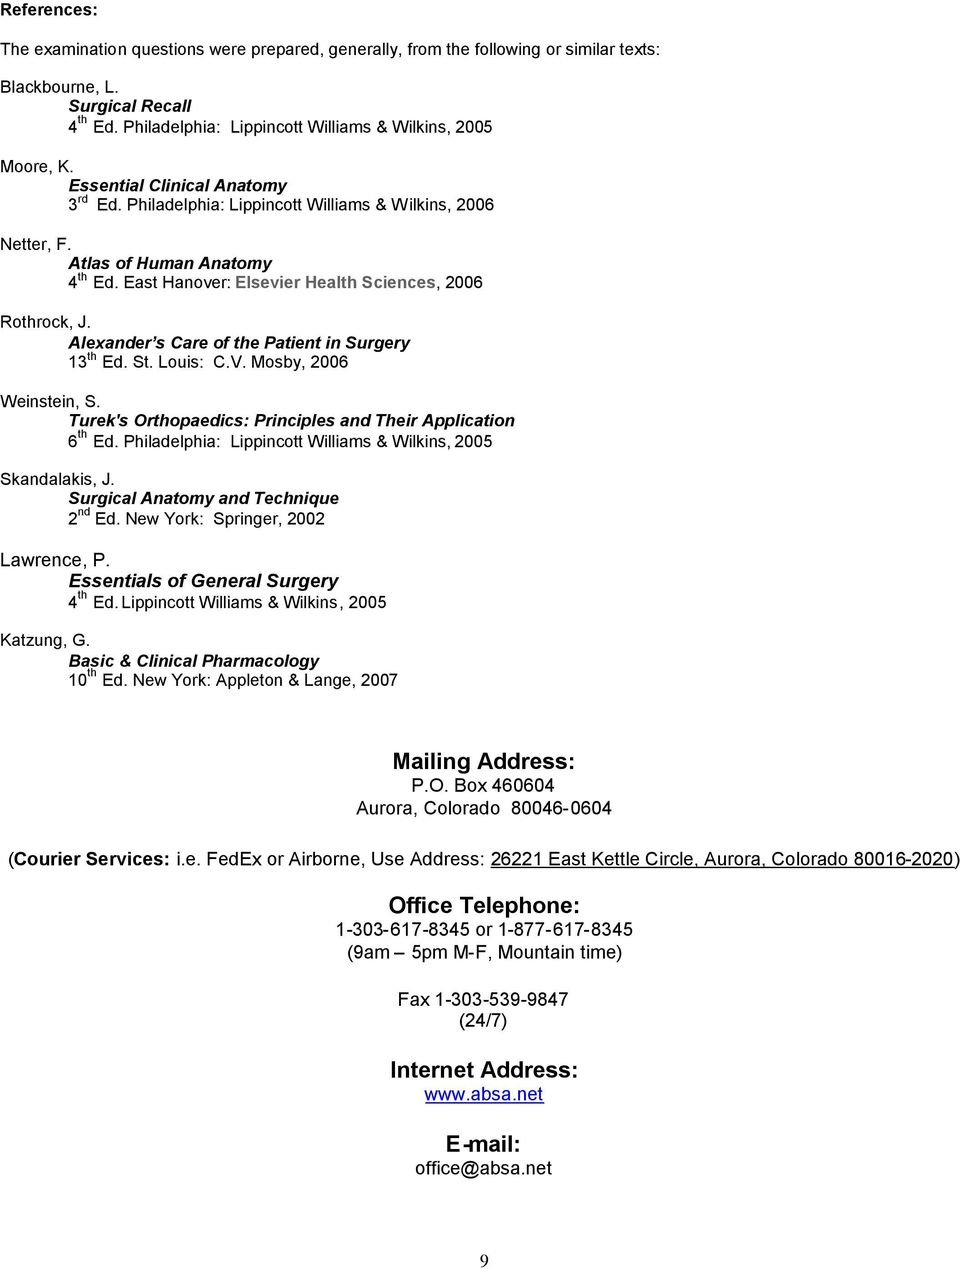 The American Board Of Surgical Assistants Pdf